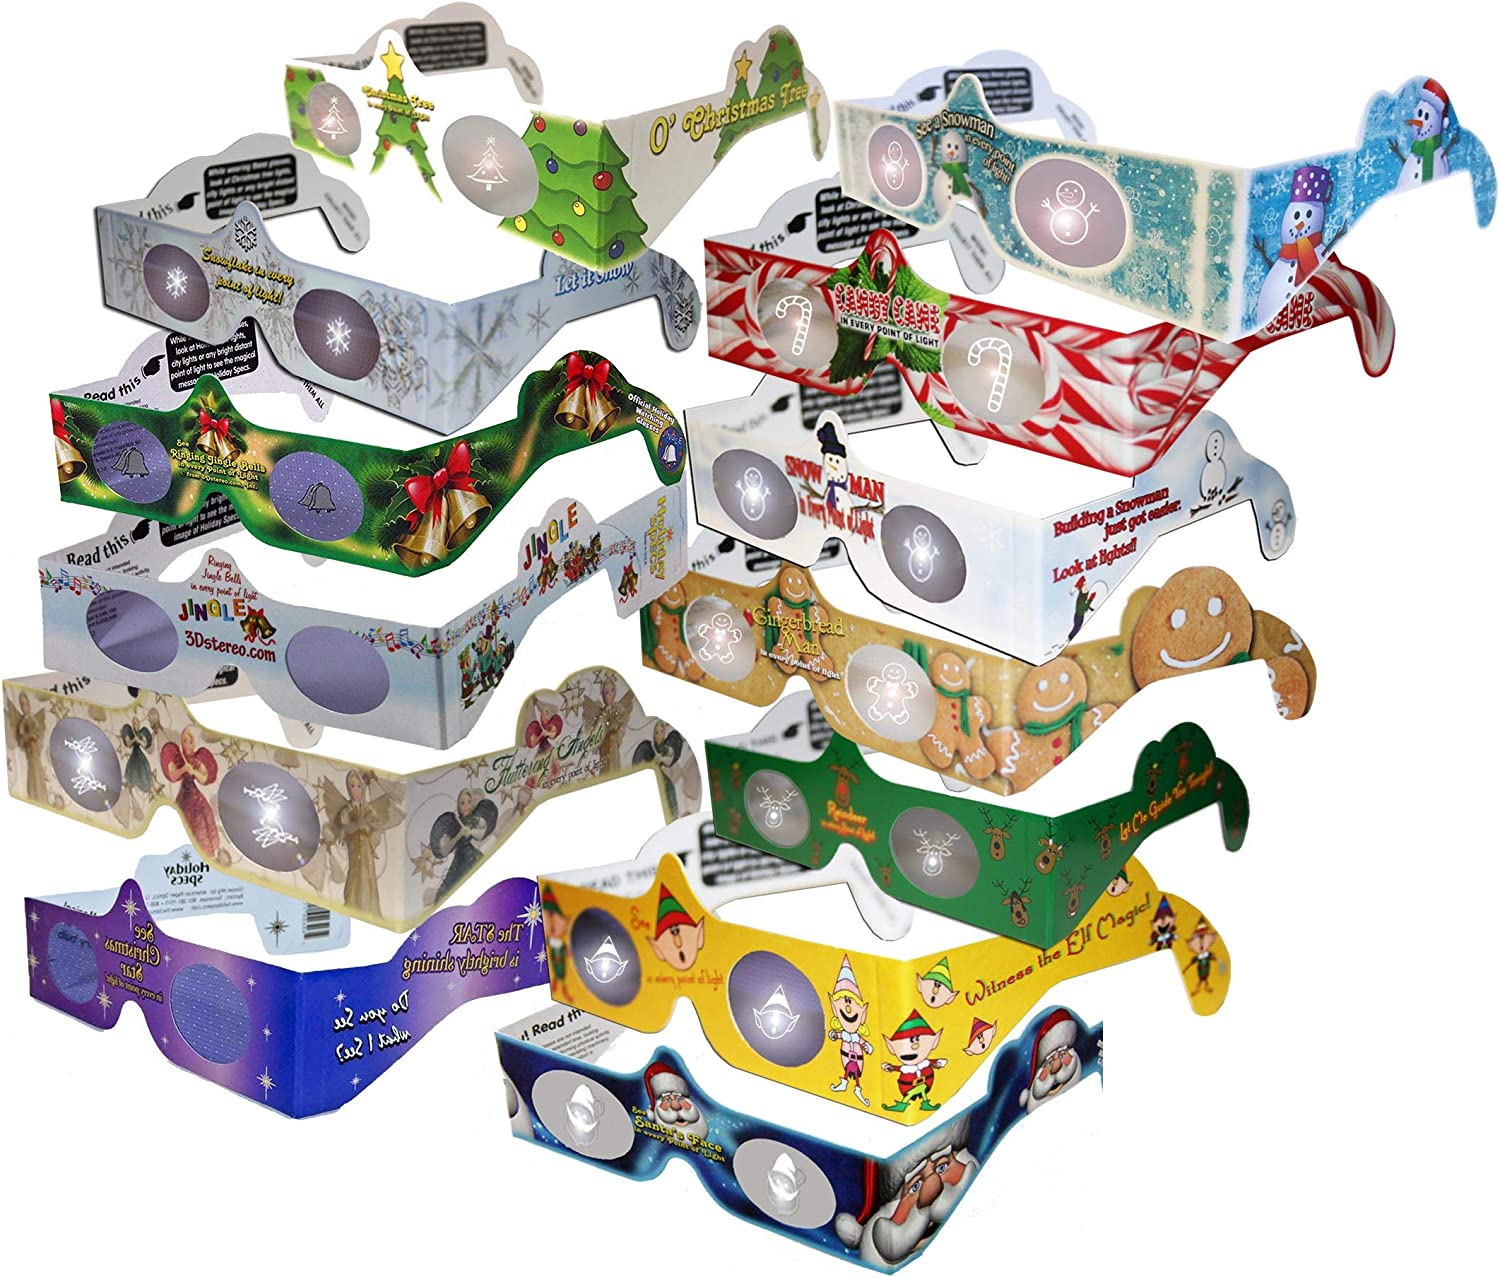 23 Pairs 3D Holiday Glasses -13 Max 84% OFF Includes Different Jingl Styles In a popularity